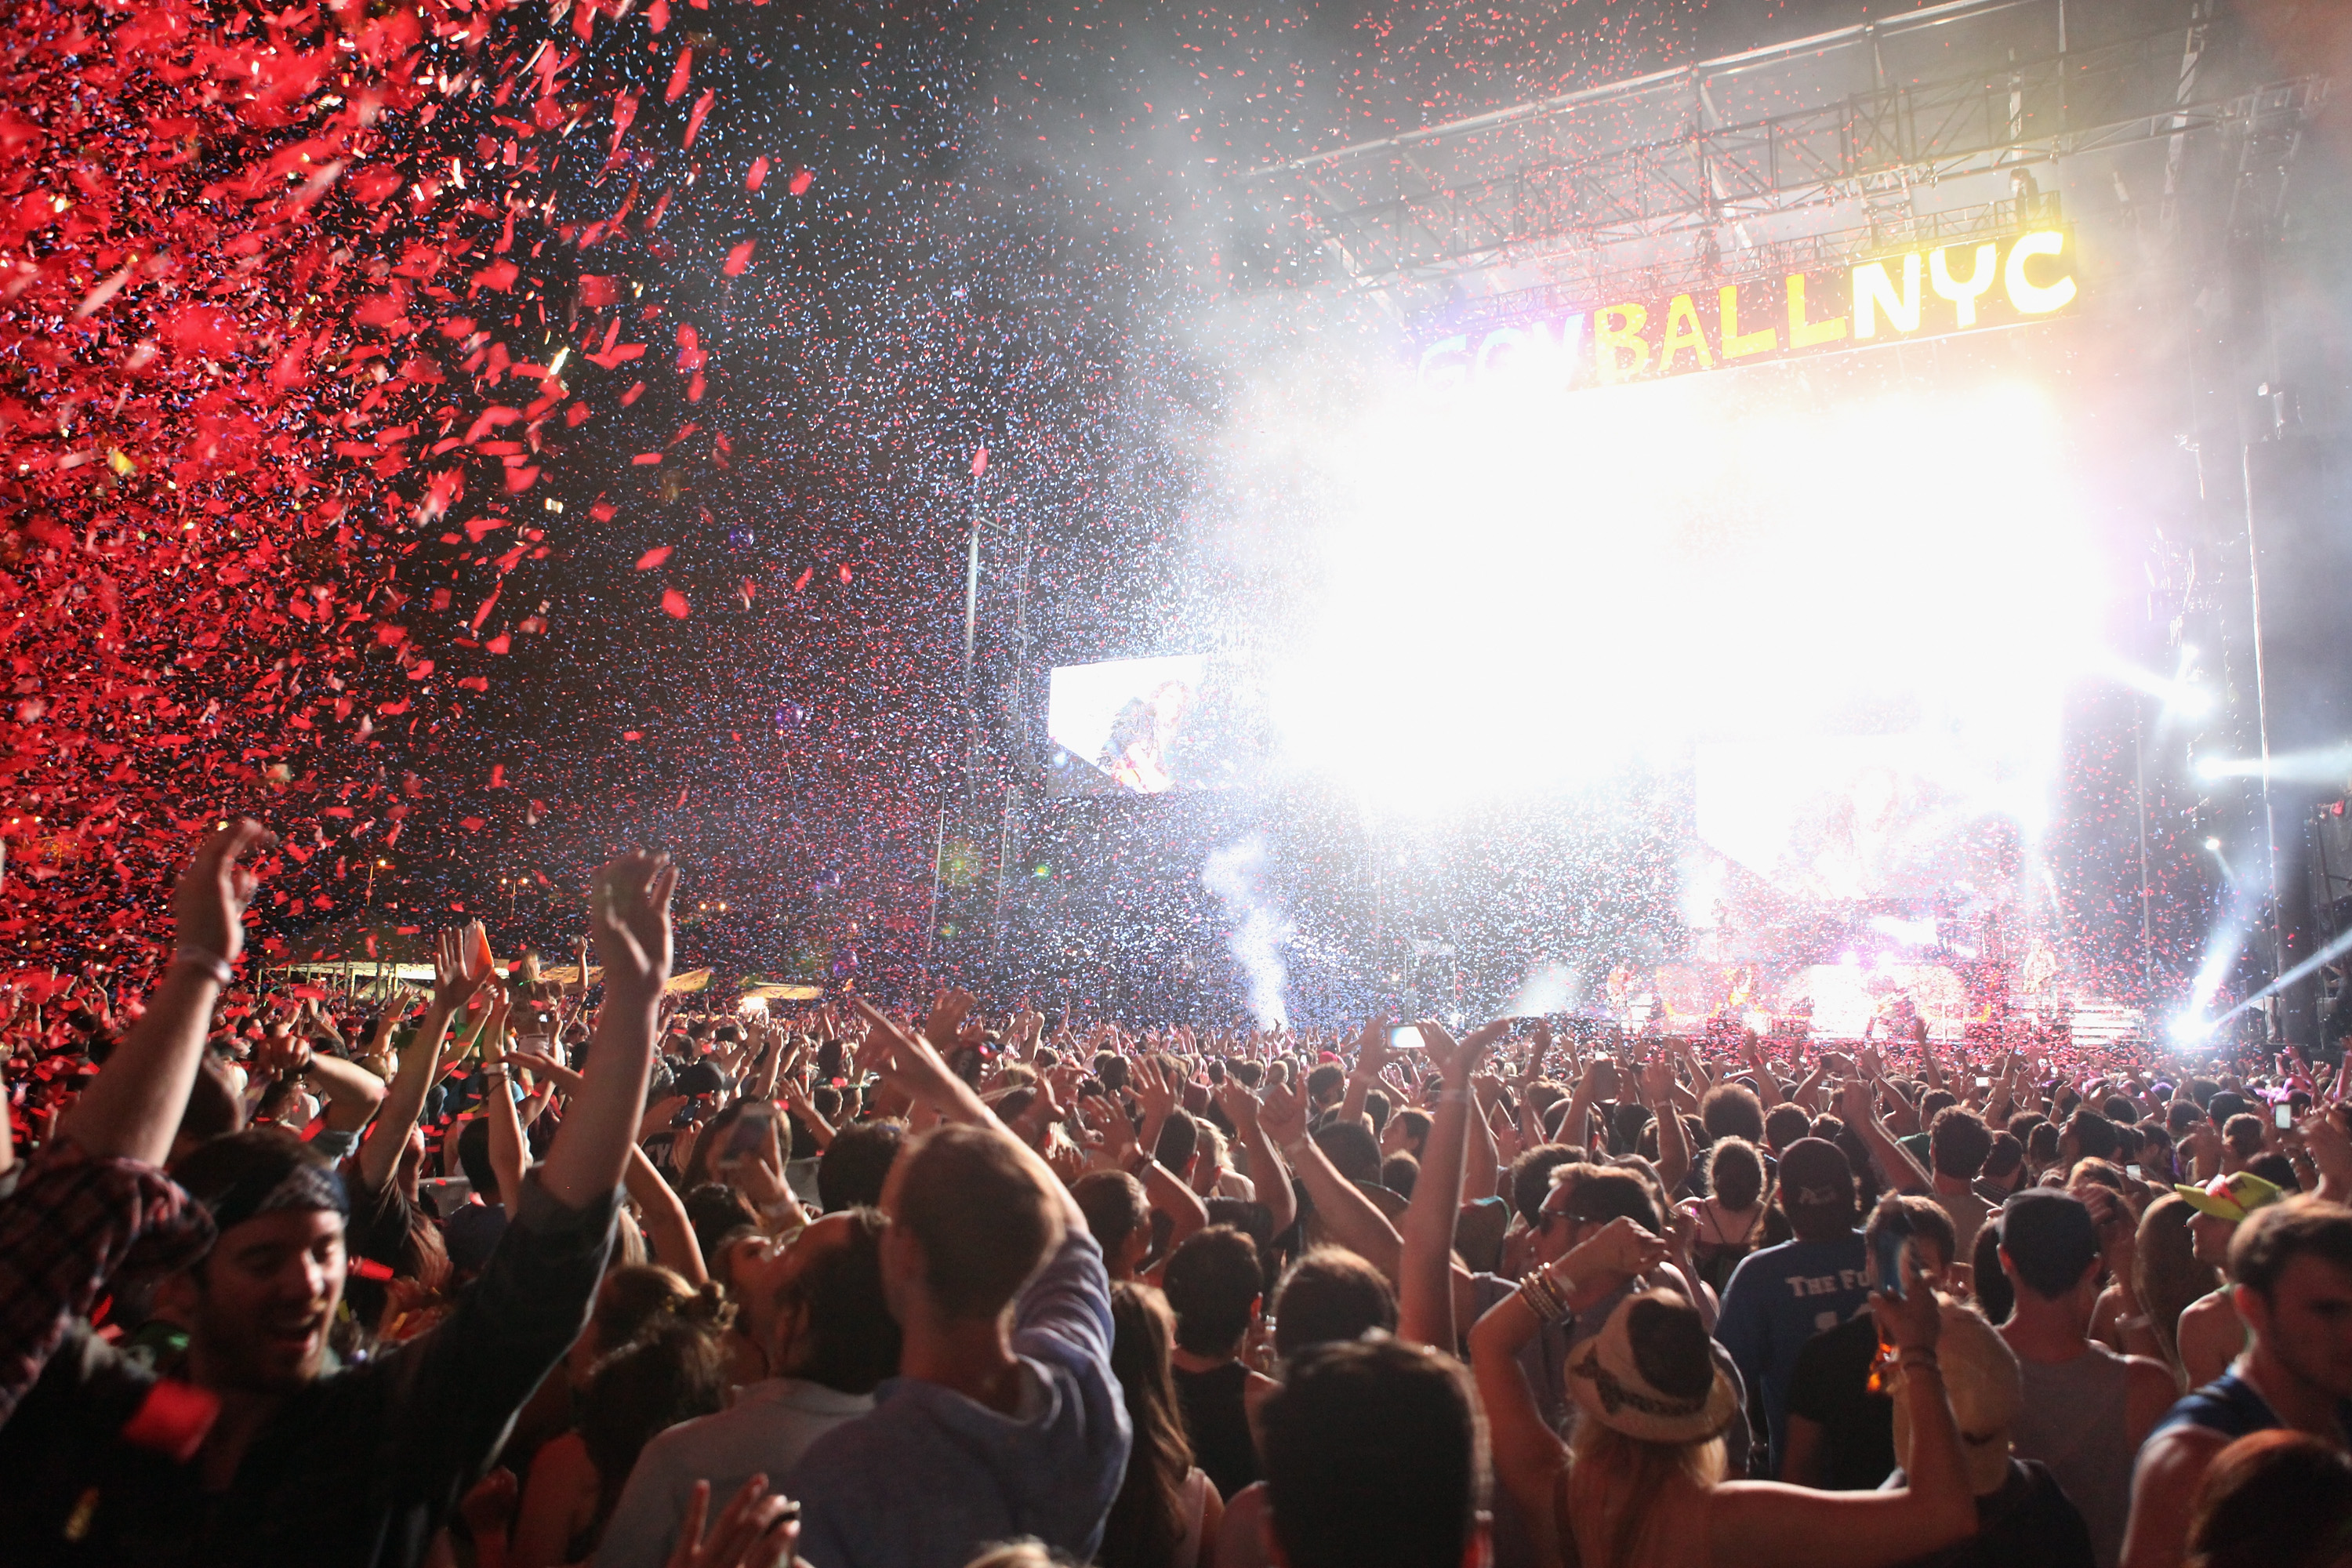 A crowd of people at the 2013 Governor's Ball Music Festival.